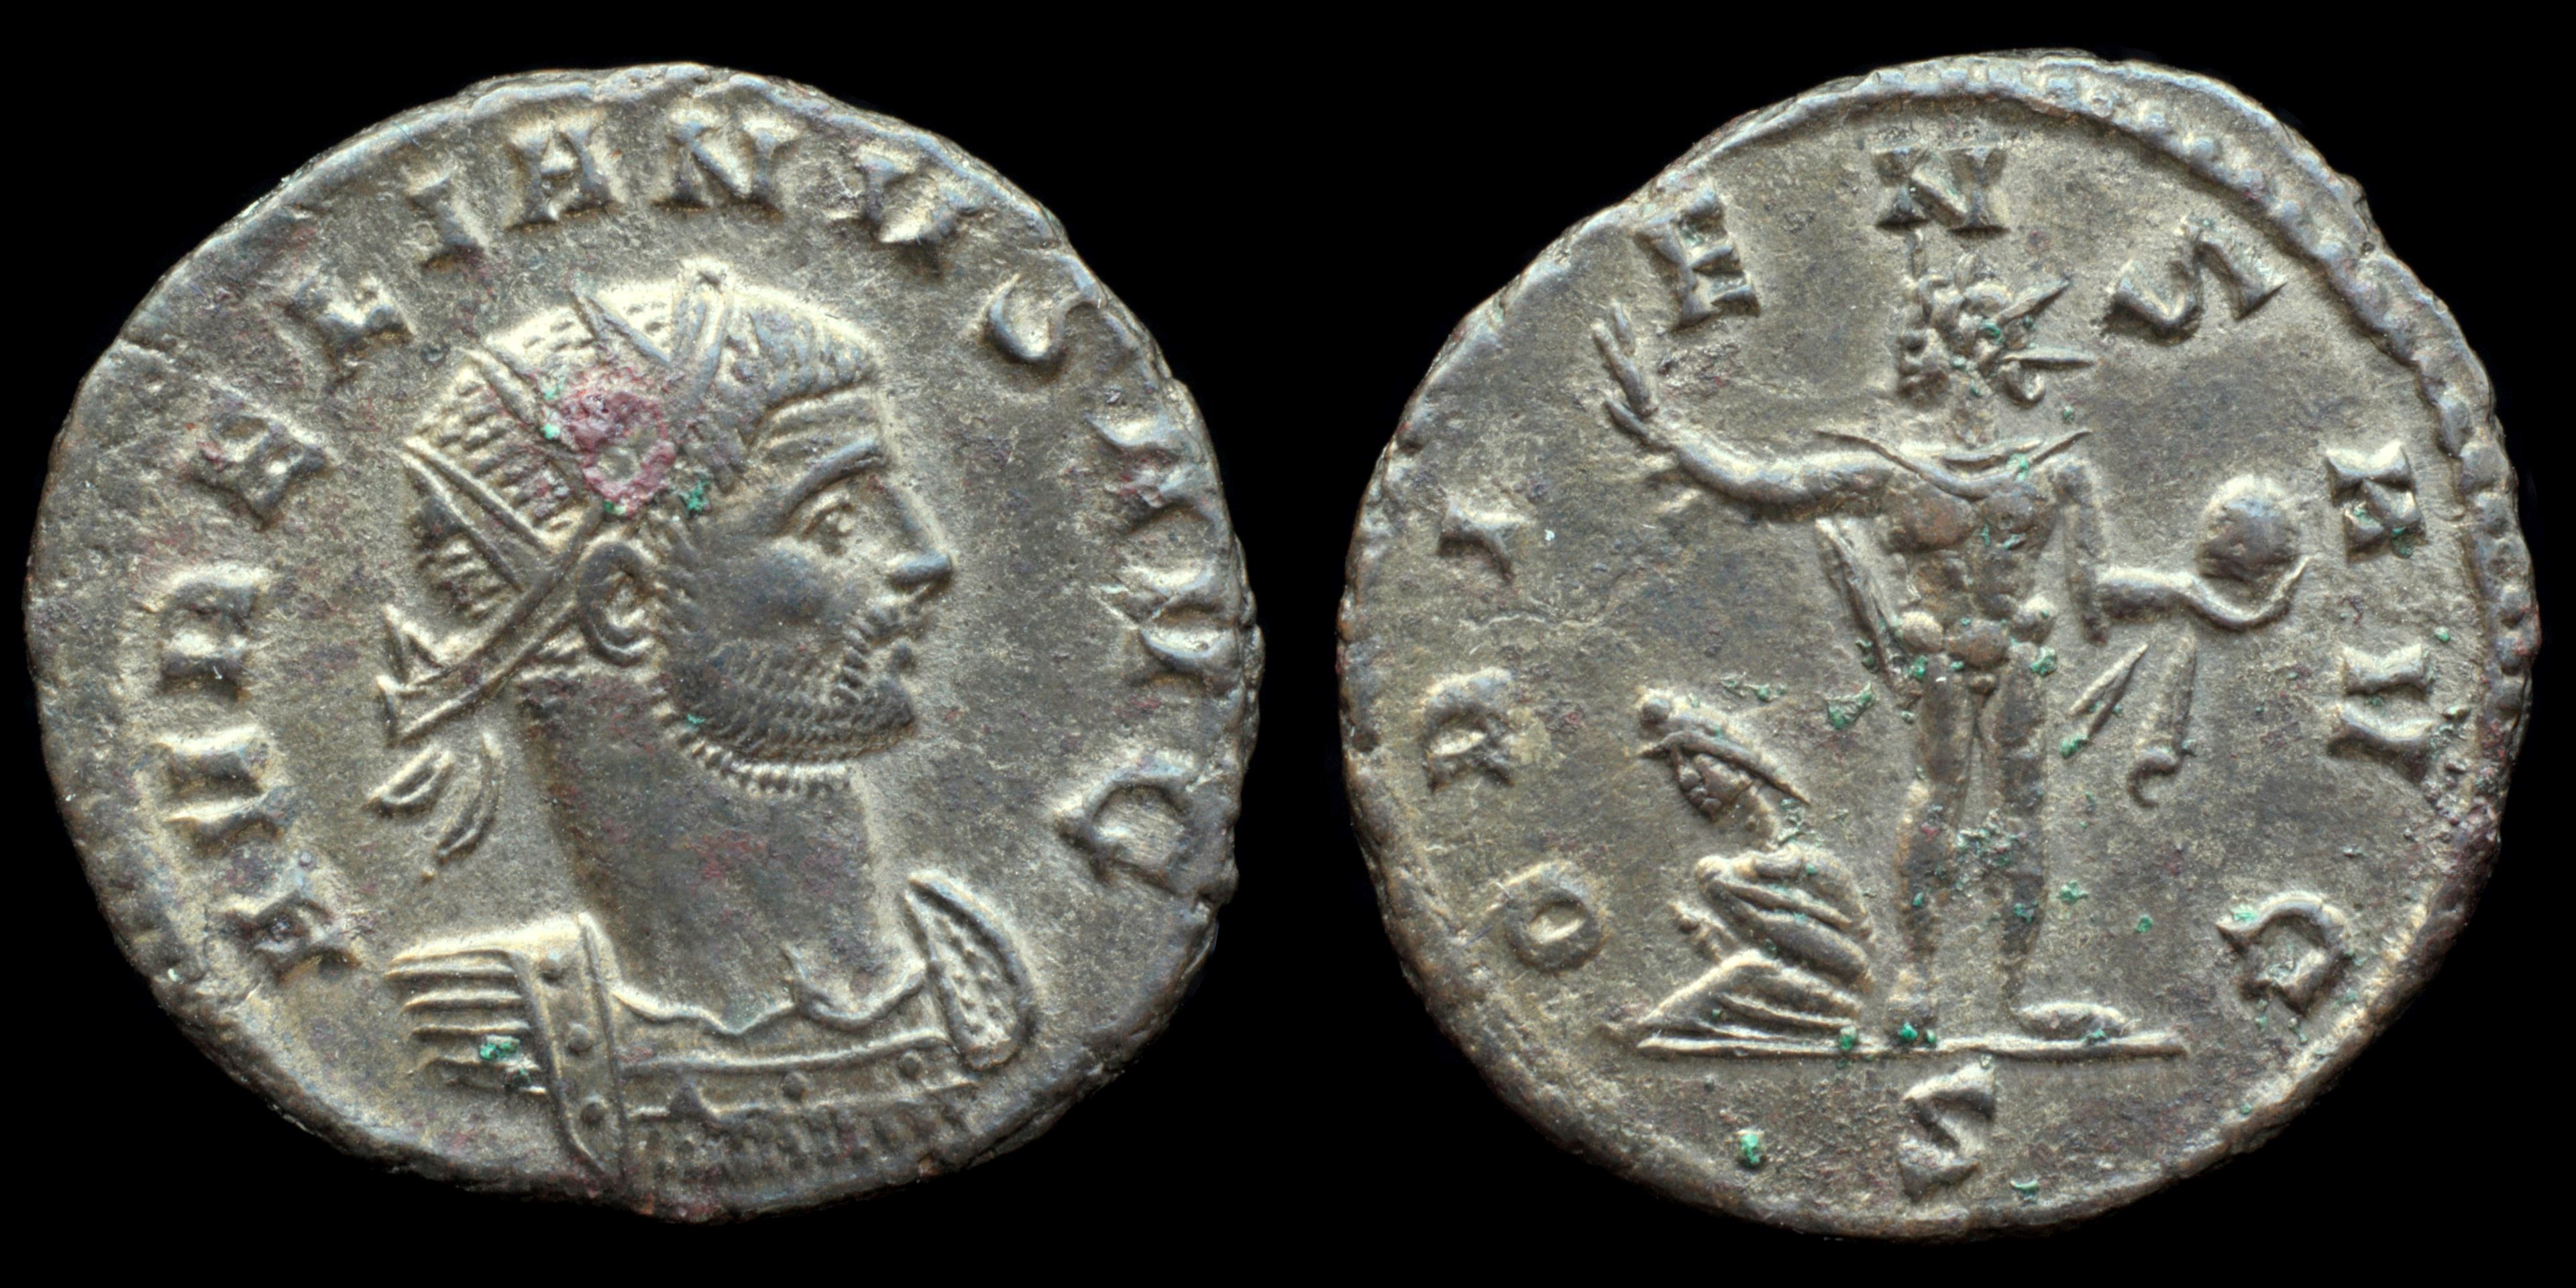 /Files/Images/Coinsite/CoinDB/1358_Aurelian_1699.jpg